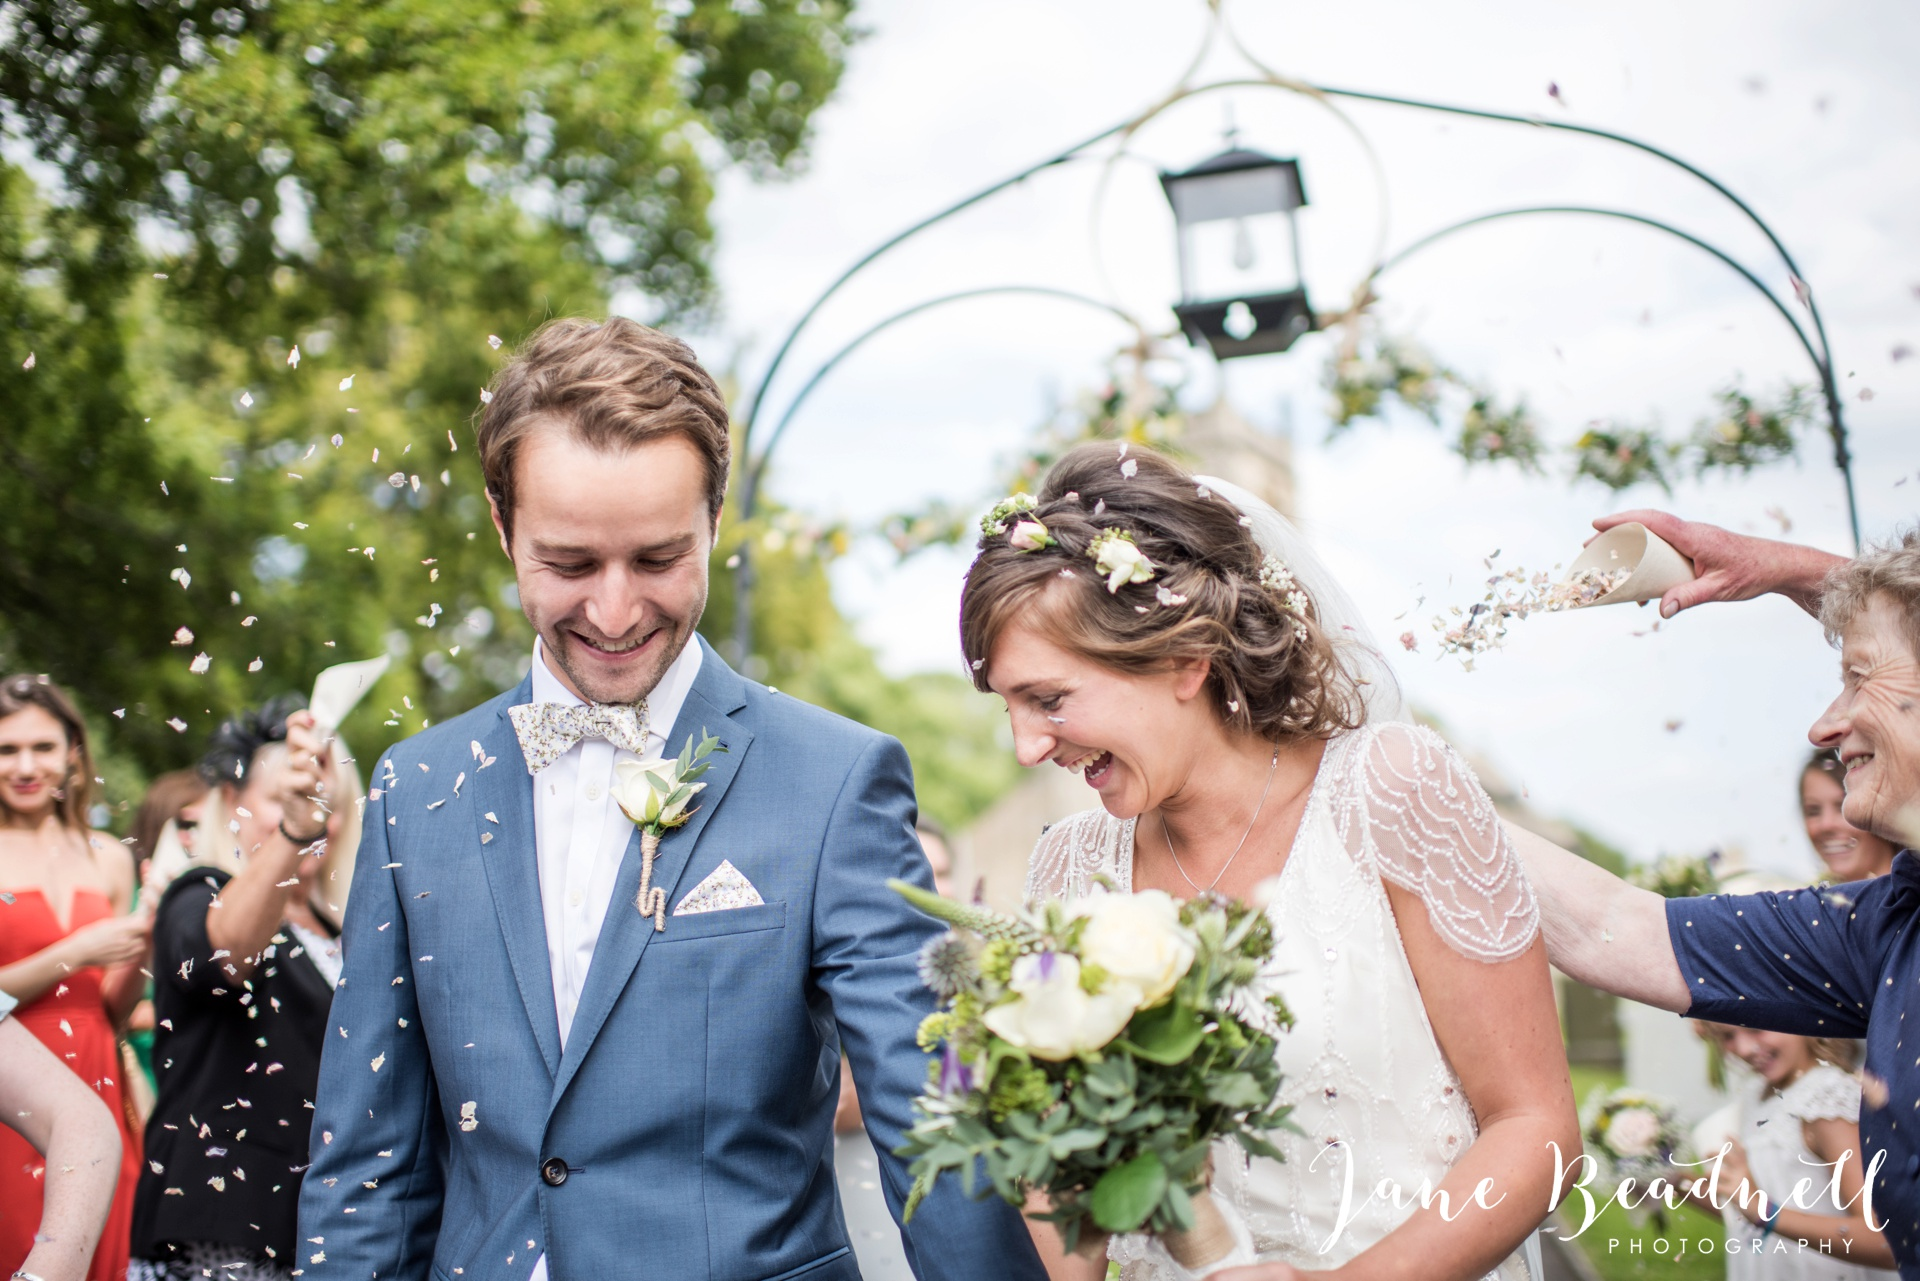 Jane Beadnell fine art wedding photographer Leeds_0054